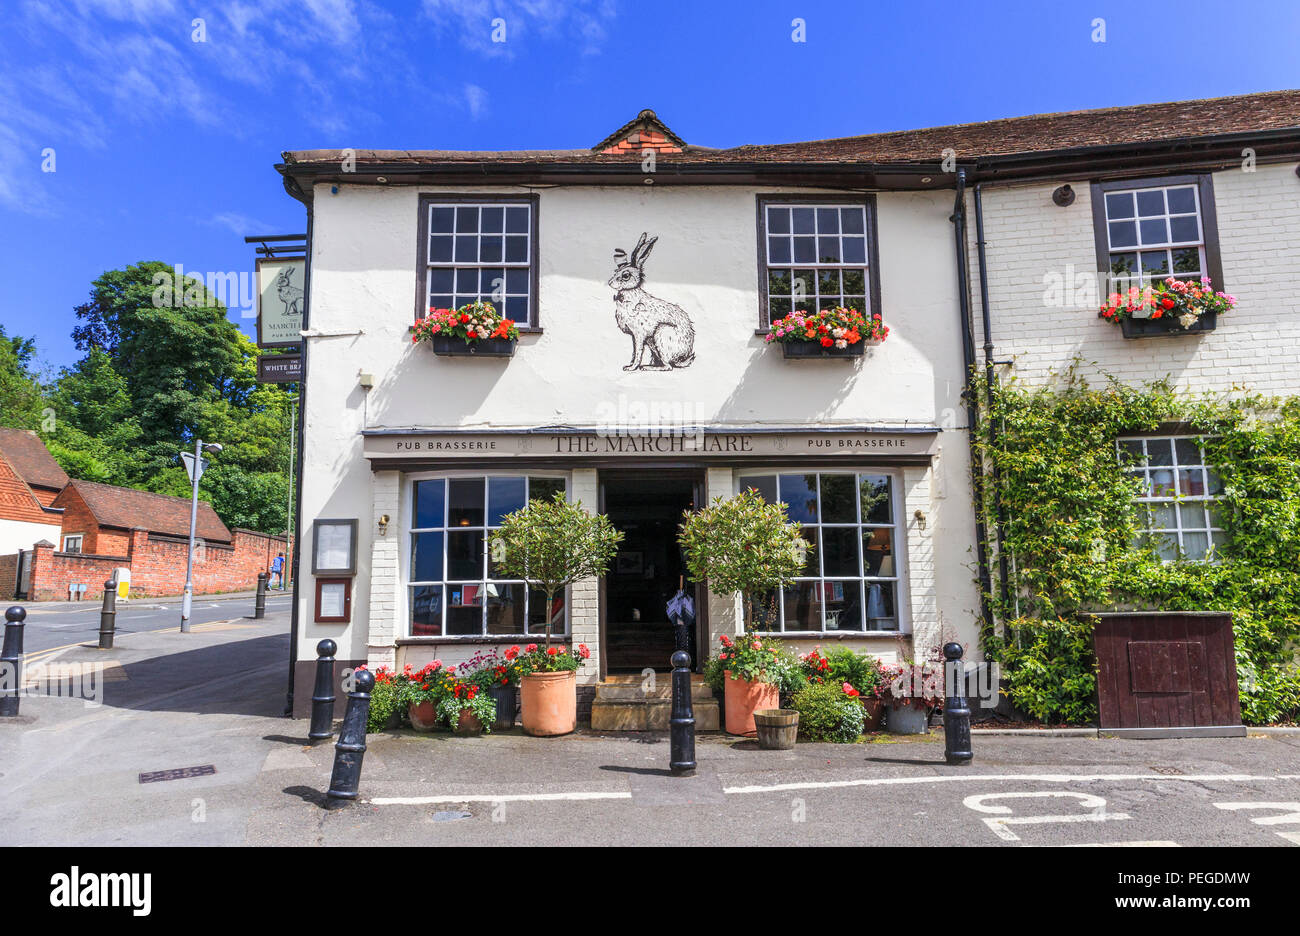 The March Hare, a whitewashed small pub brasserie in South Hill, central Guildford, county town of Surrey, southeast England, UK on a sunny day - Stock Image